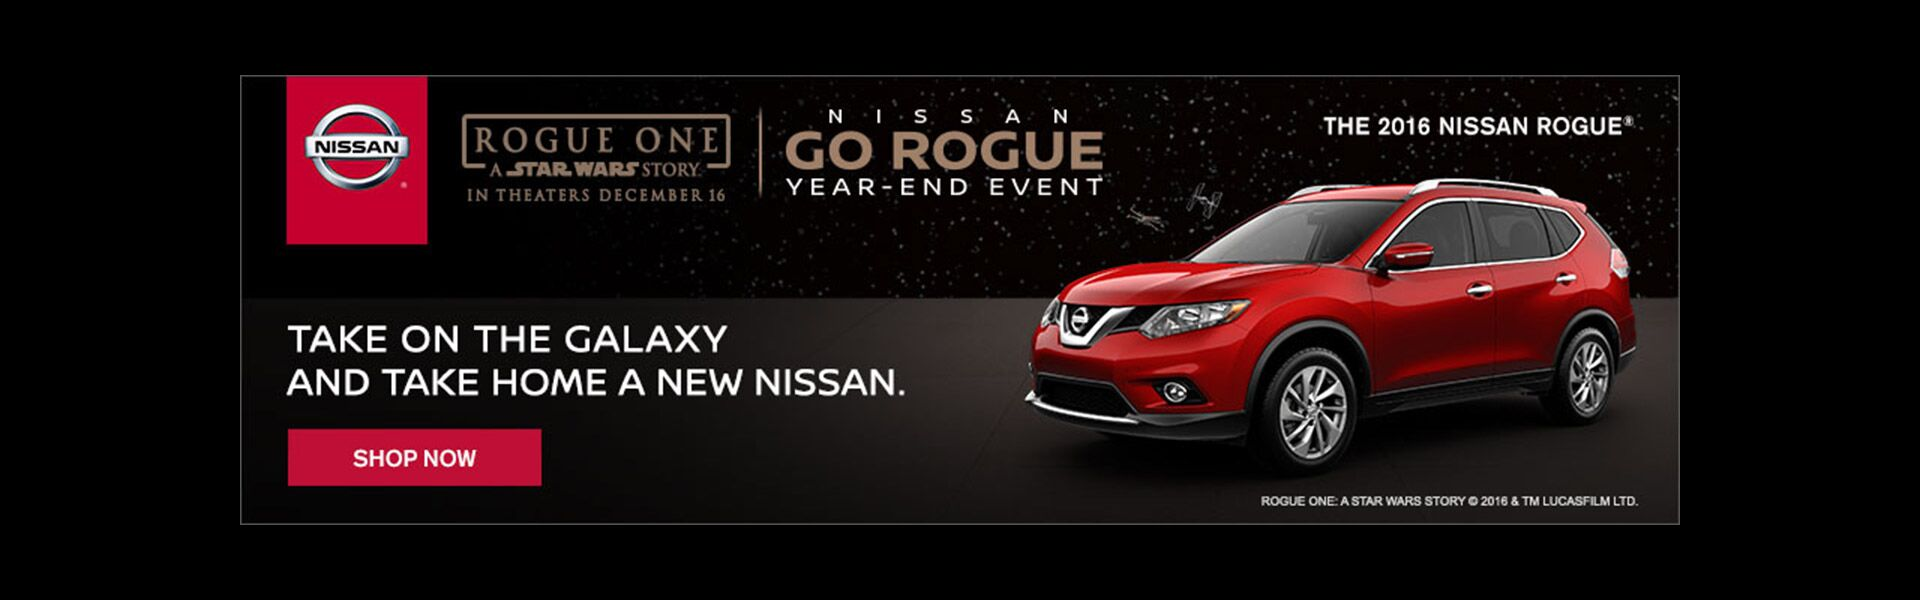 Glendale heights nissan coupons